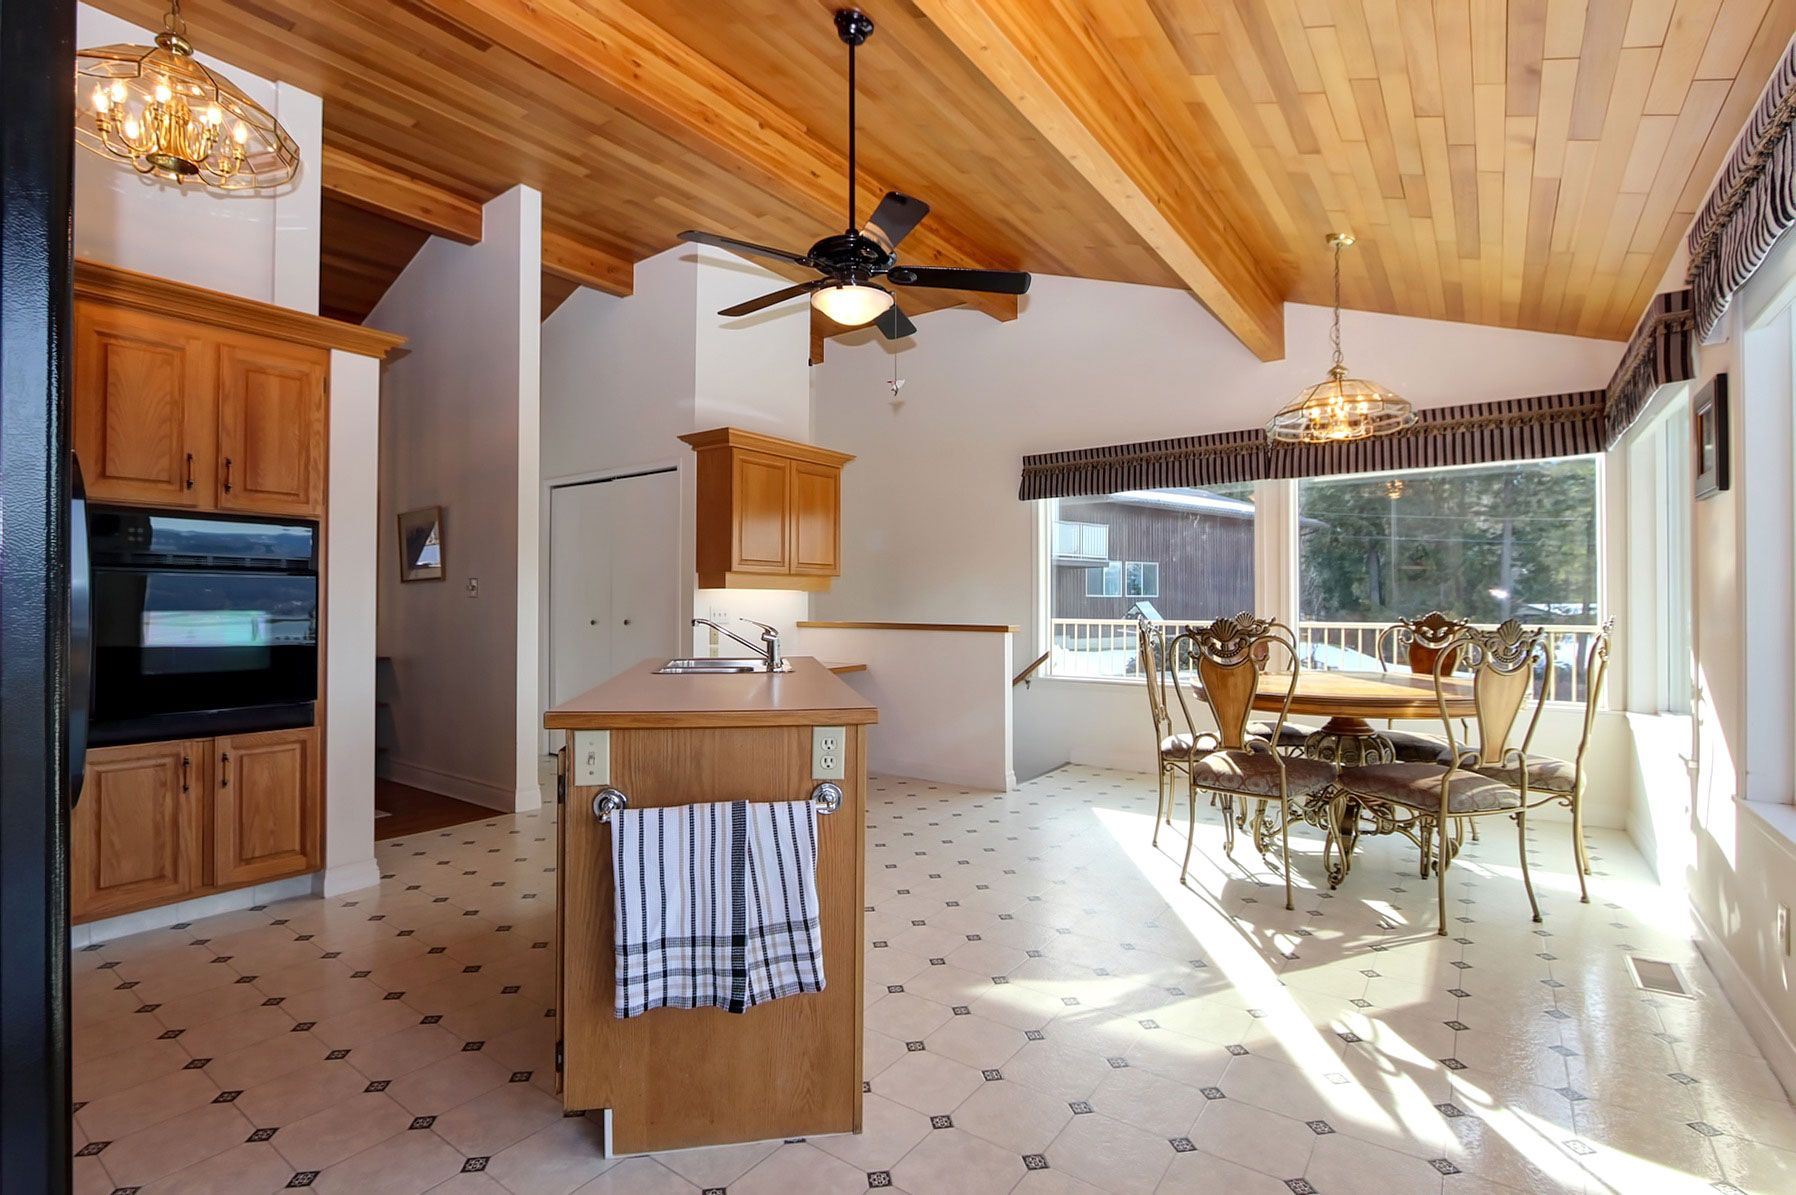 Photo 15: Photos: 1350 Trans Canada Highway in Sorrento: House for sale : MLS®# 10225818